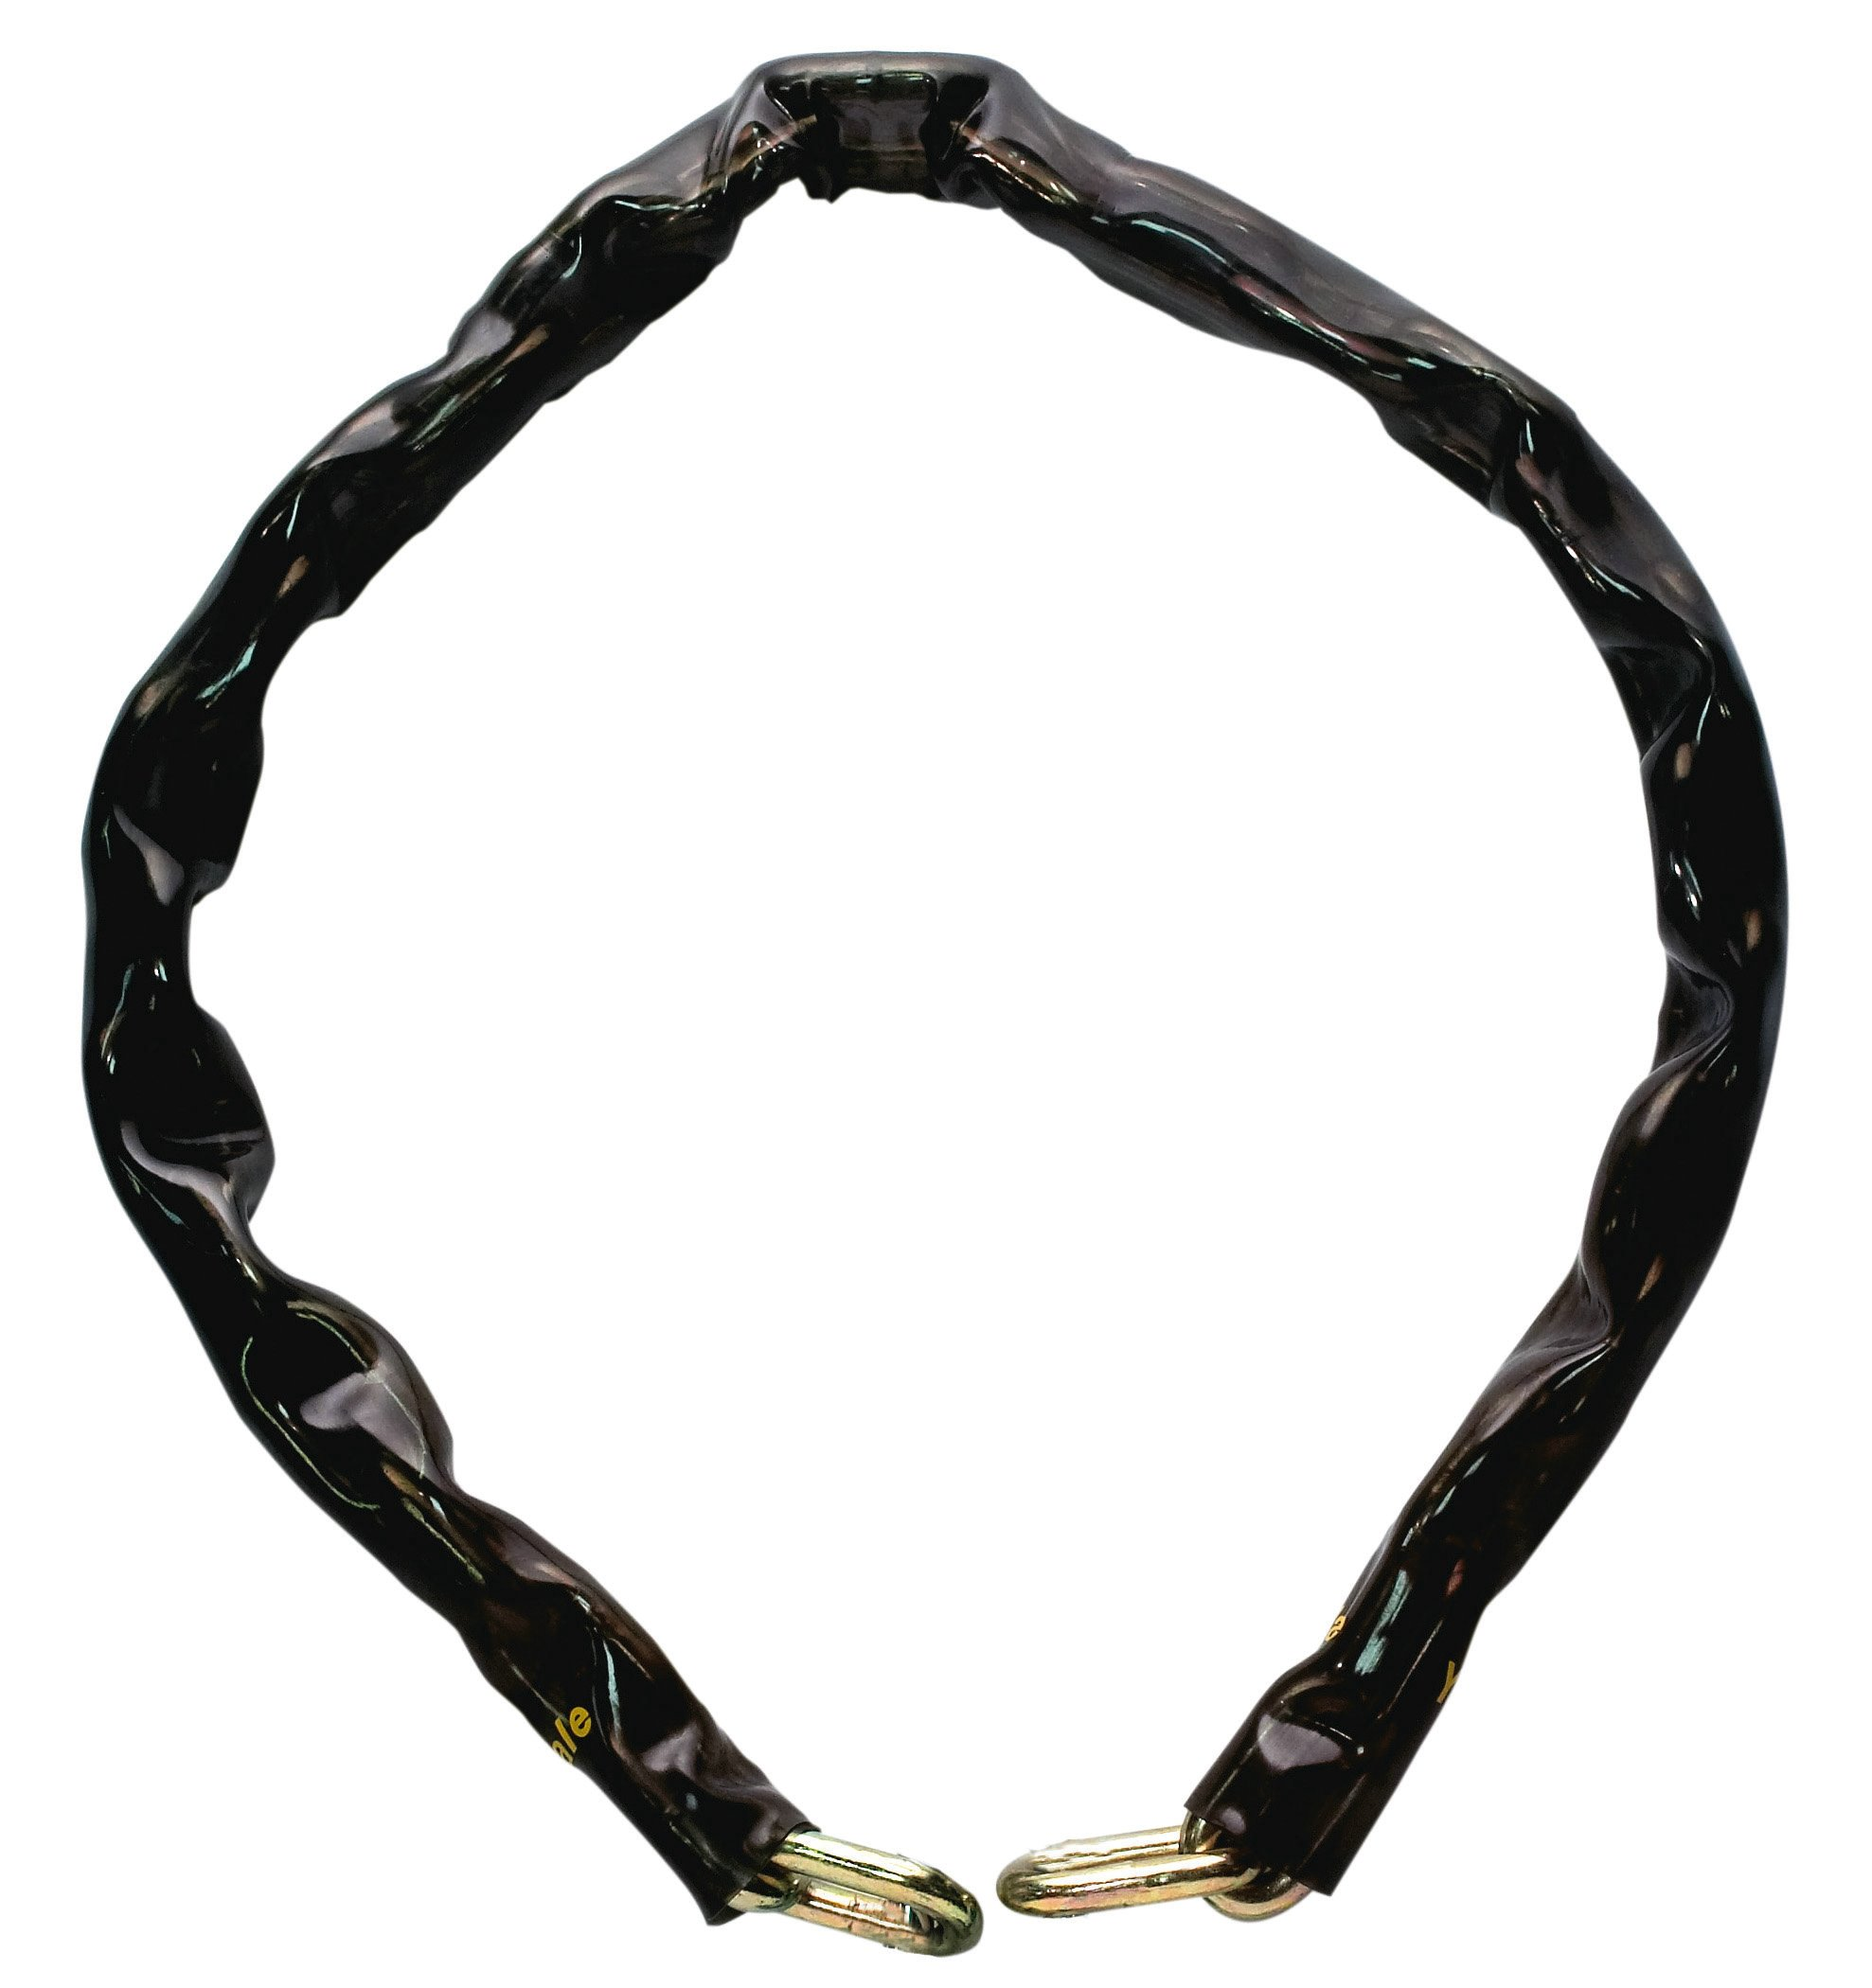 B-CHAIN Heavy Duty Steel Chain